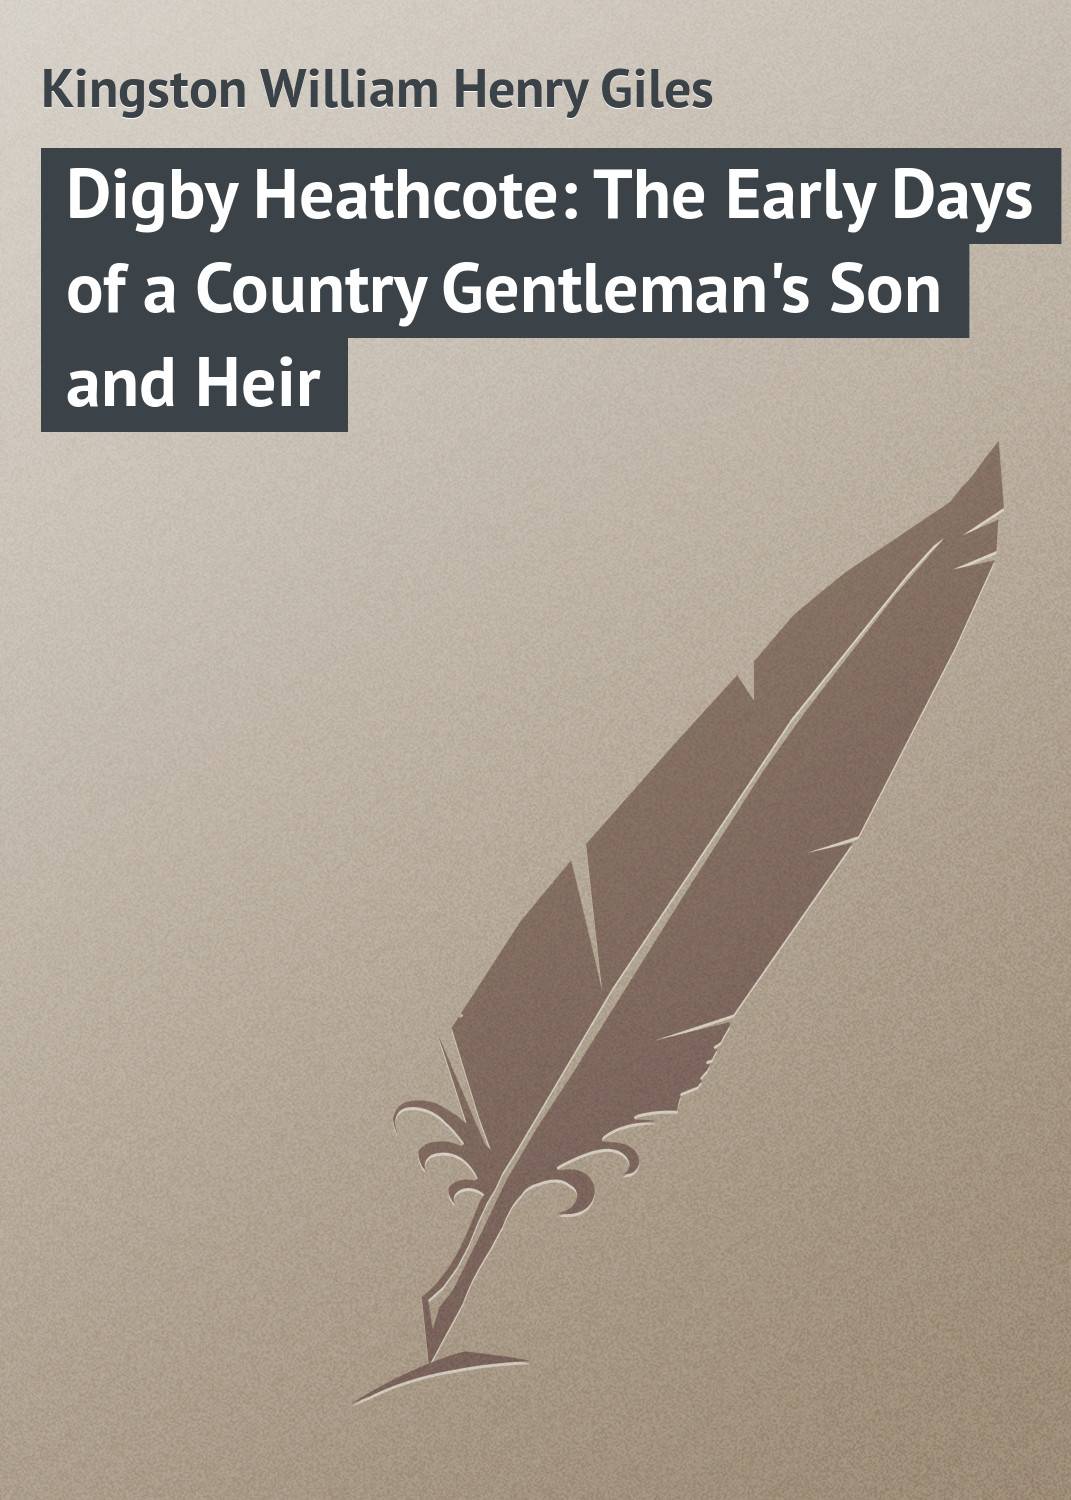 лучшая цена Kingston William Henry Giles Digby Heathcote: The Early Days of a Country Gentleman's Son and Heir